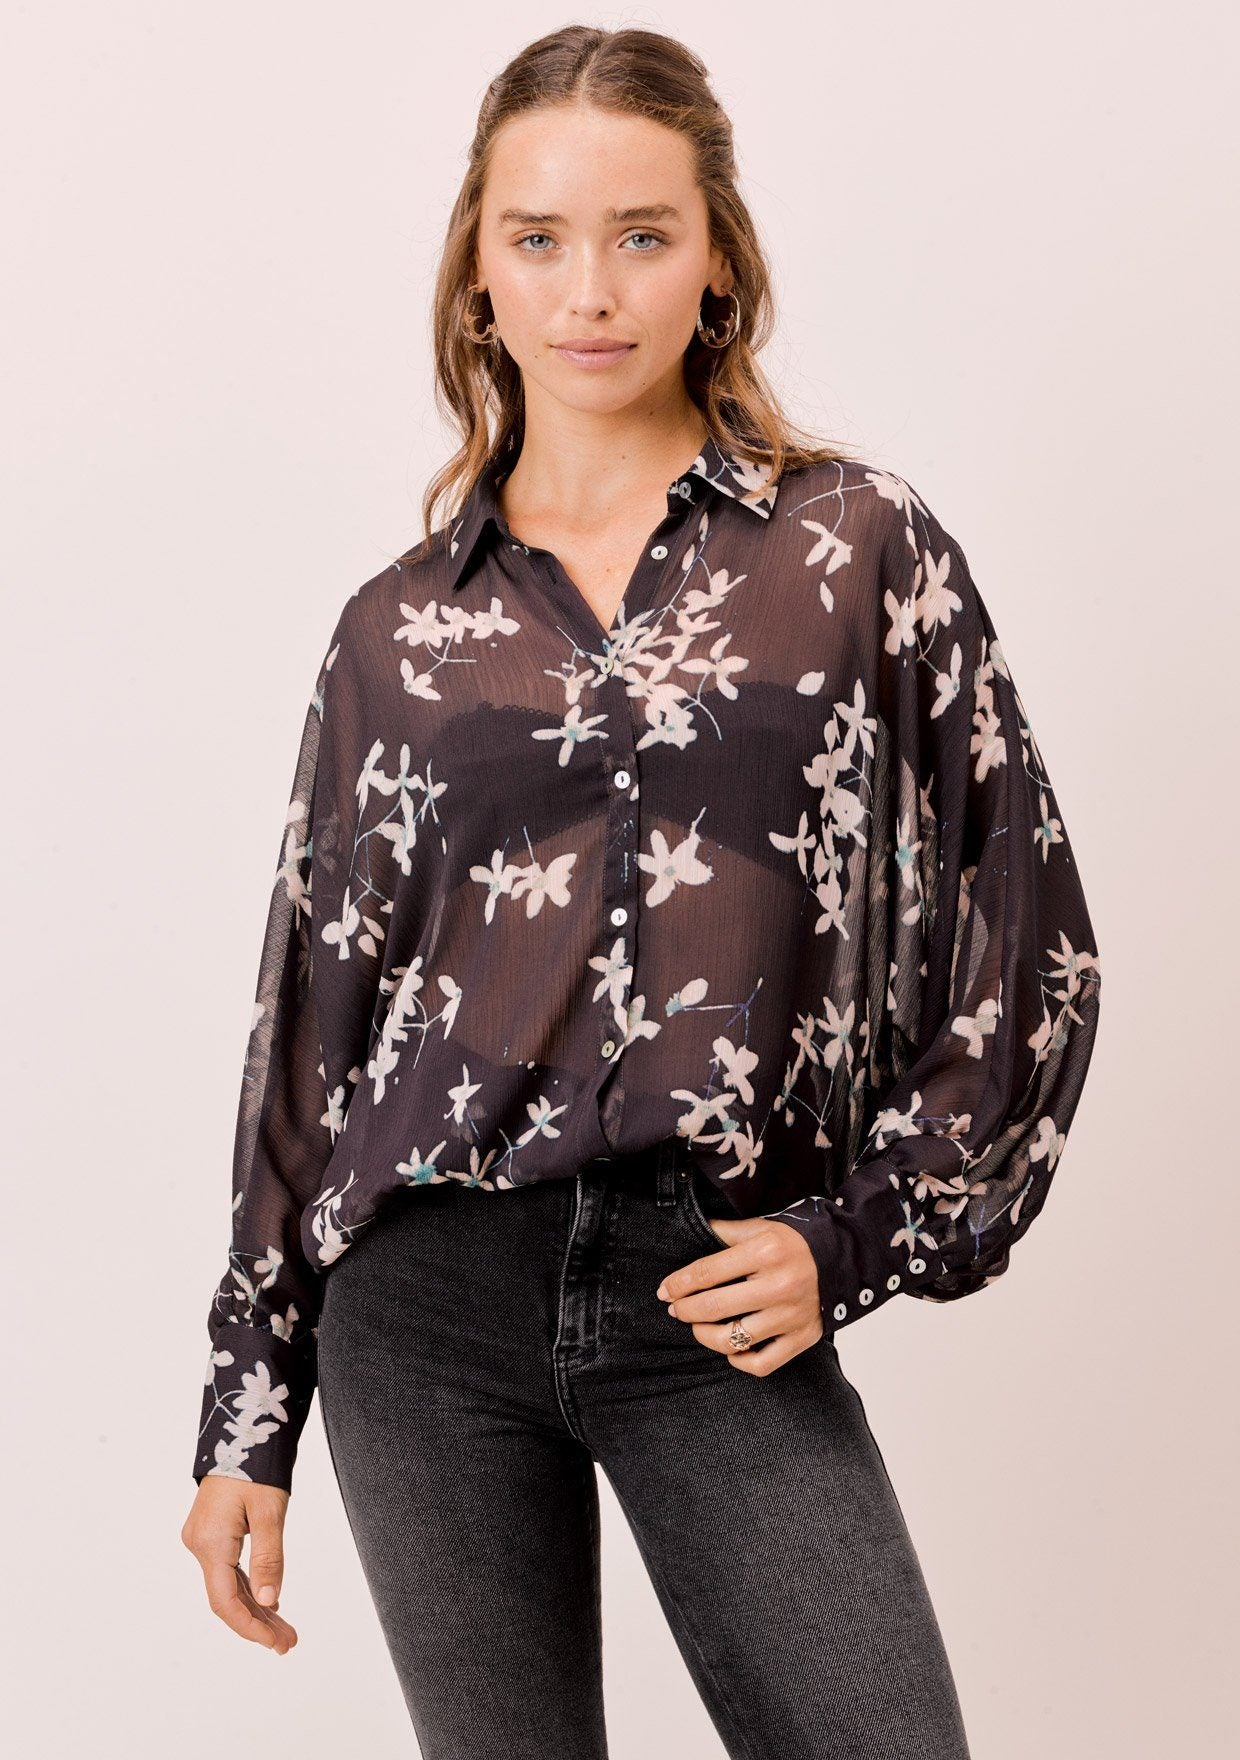 [Color: Midnight/Champagne] Lovestitch Midnight/Champagne Sheer, floral printed, dolman sleeve buttondown blouse.